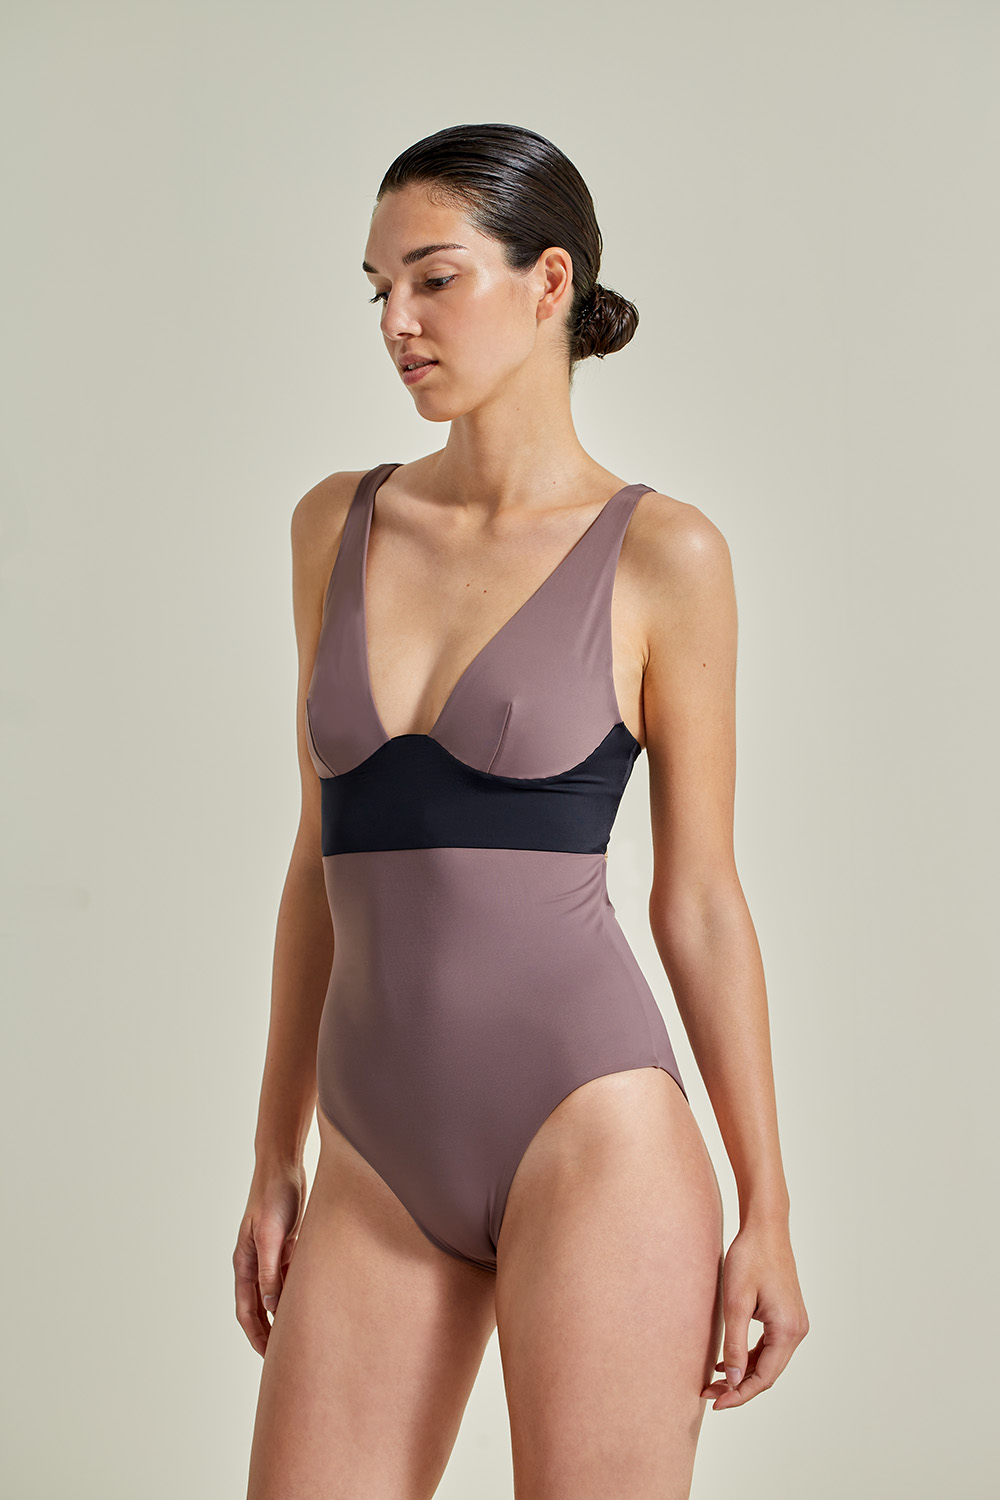 Sustainable Luxury Swimwear / Ropa de baño sostenible, eco swimsuit / bañador ecológico. Pacífico onepiece in taupe by NOW_THEN